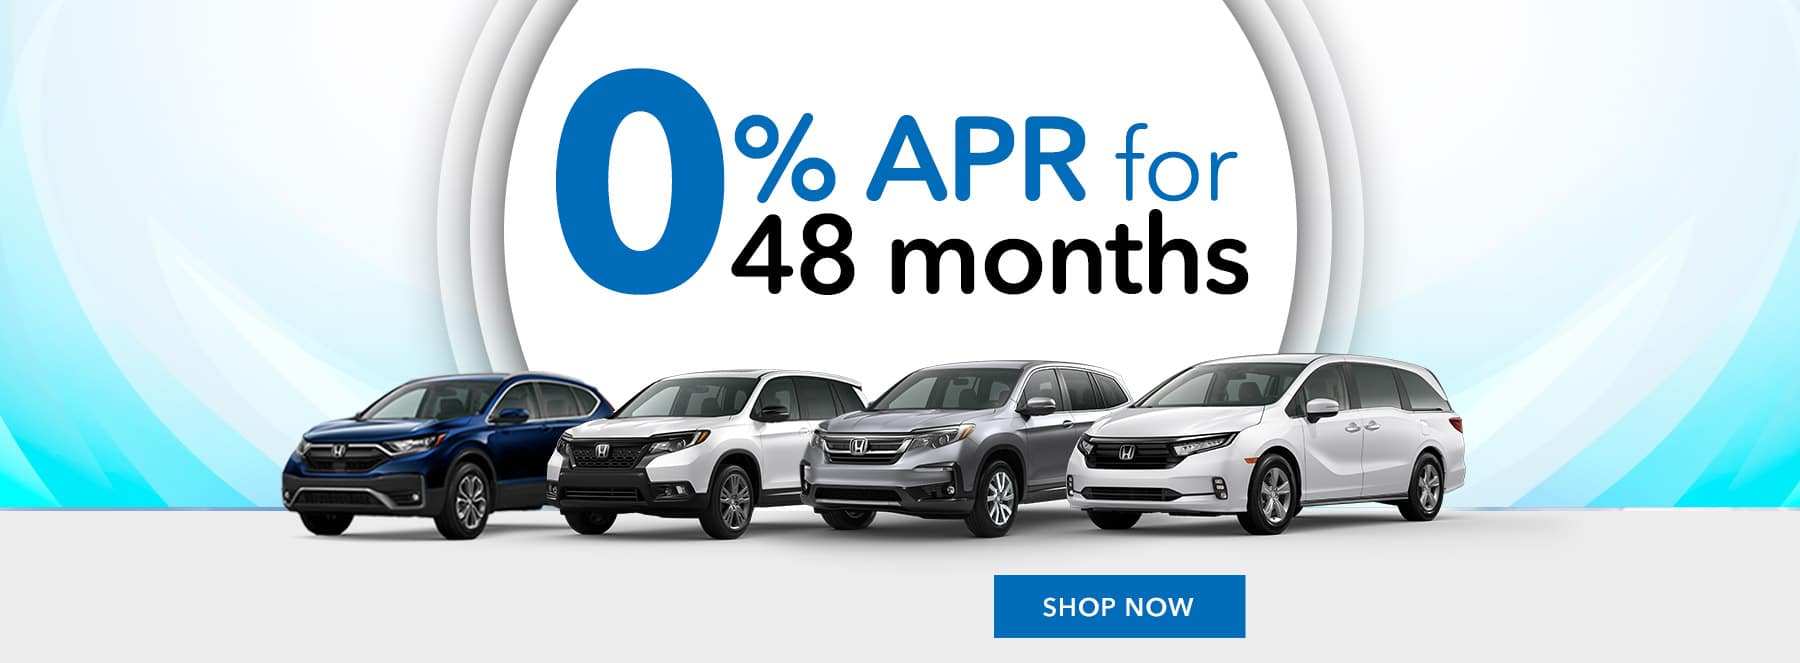 Honda 0% APR for 48 months